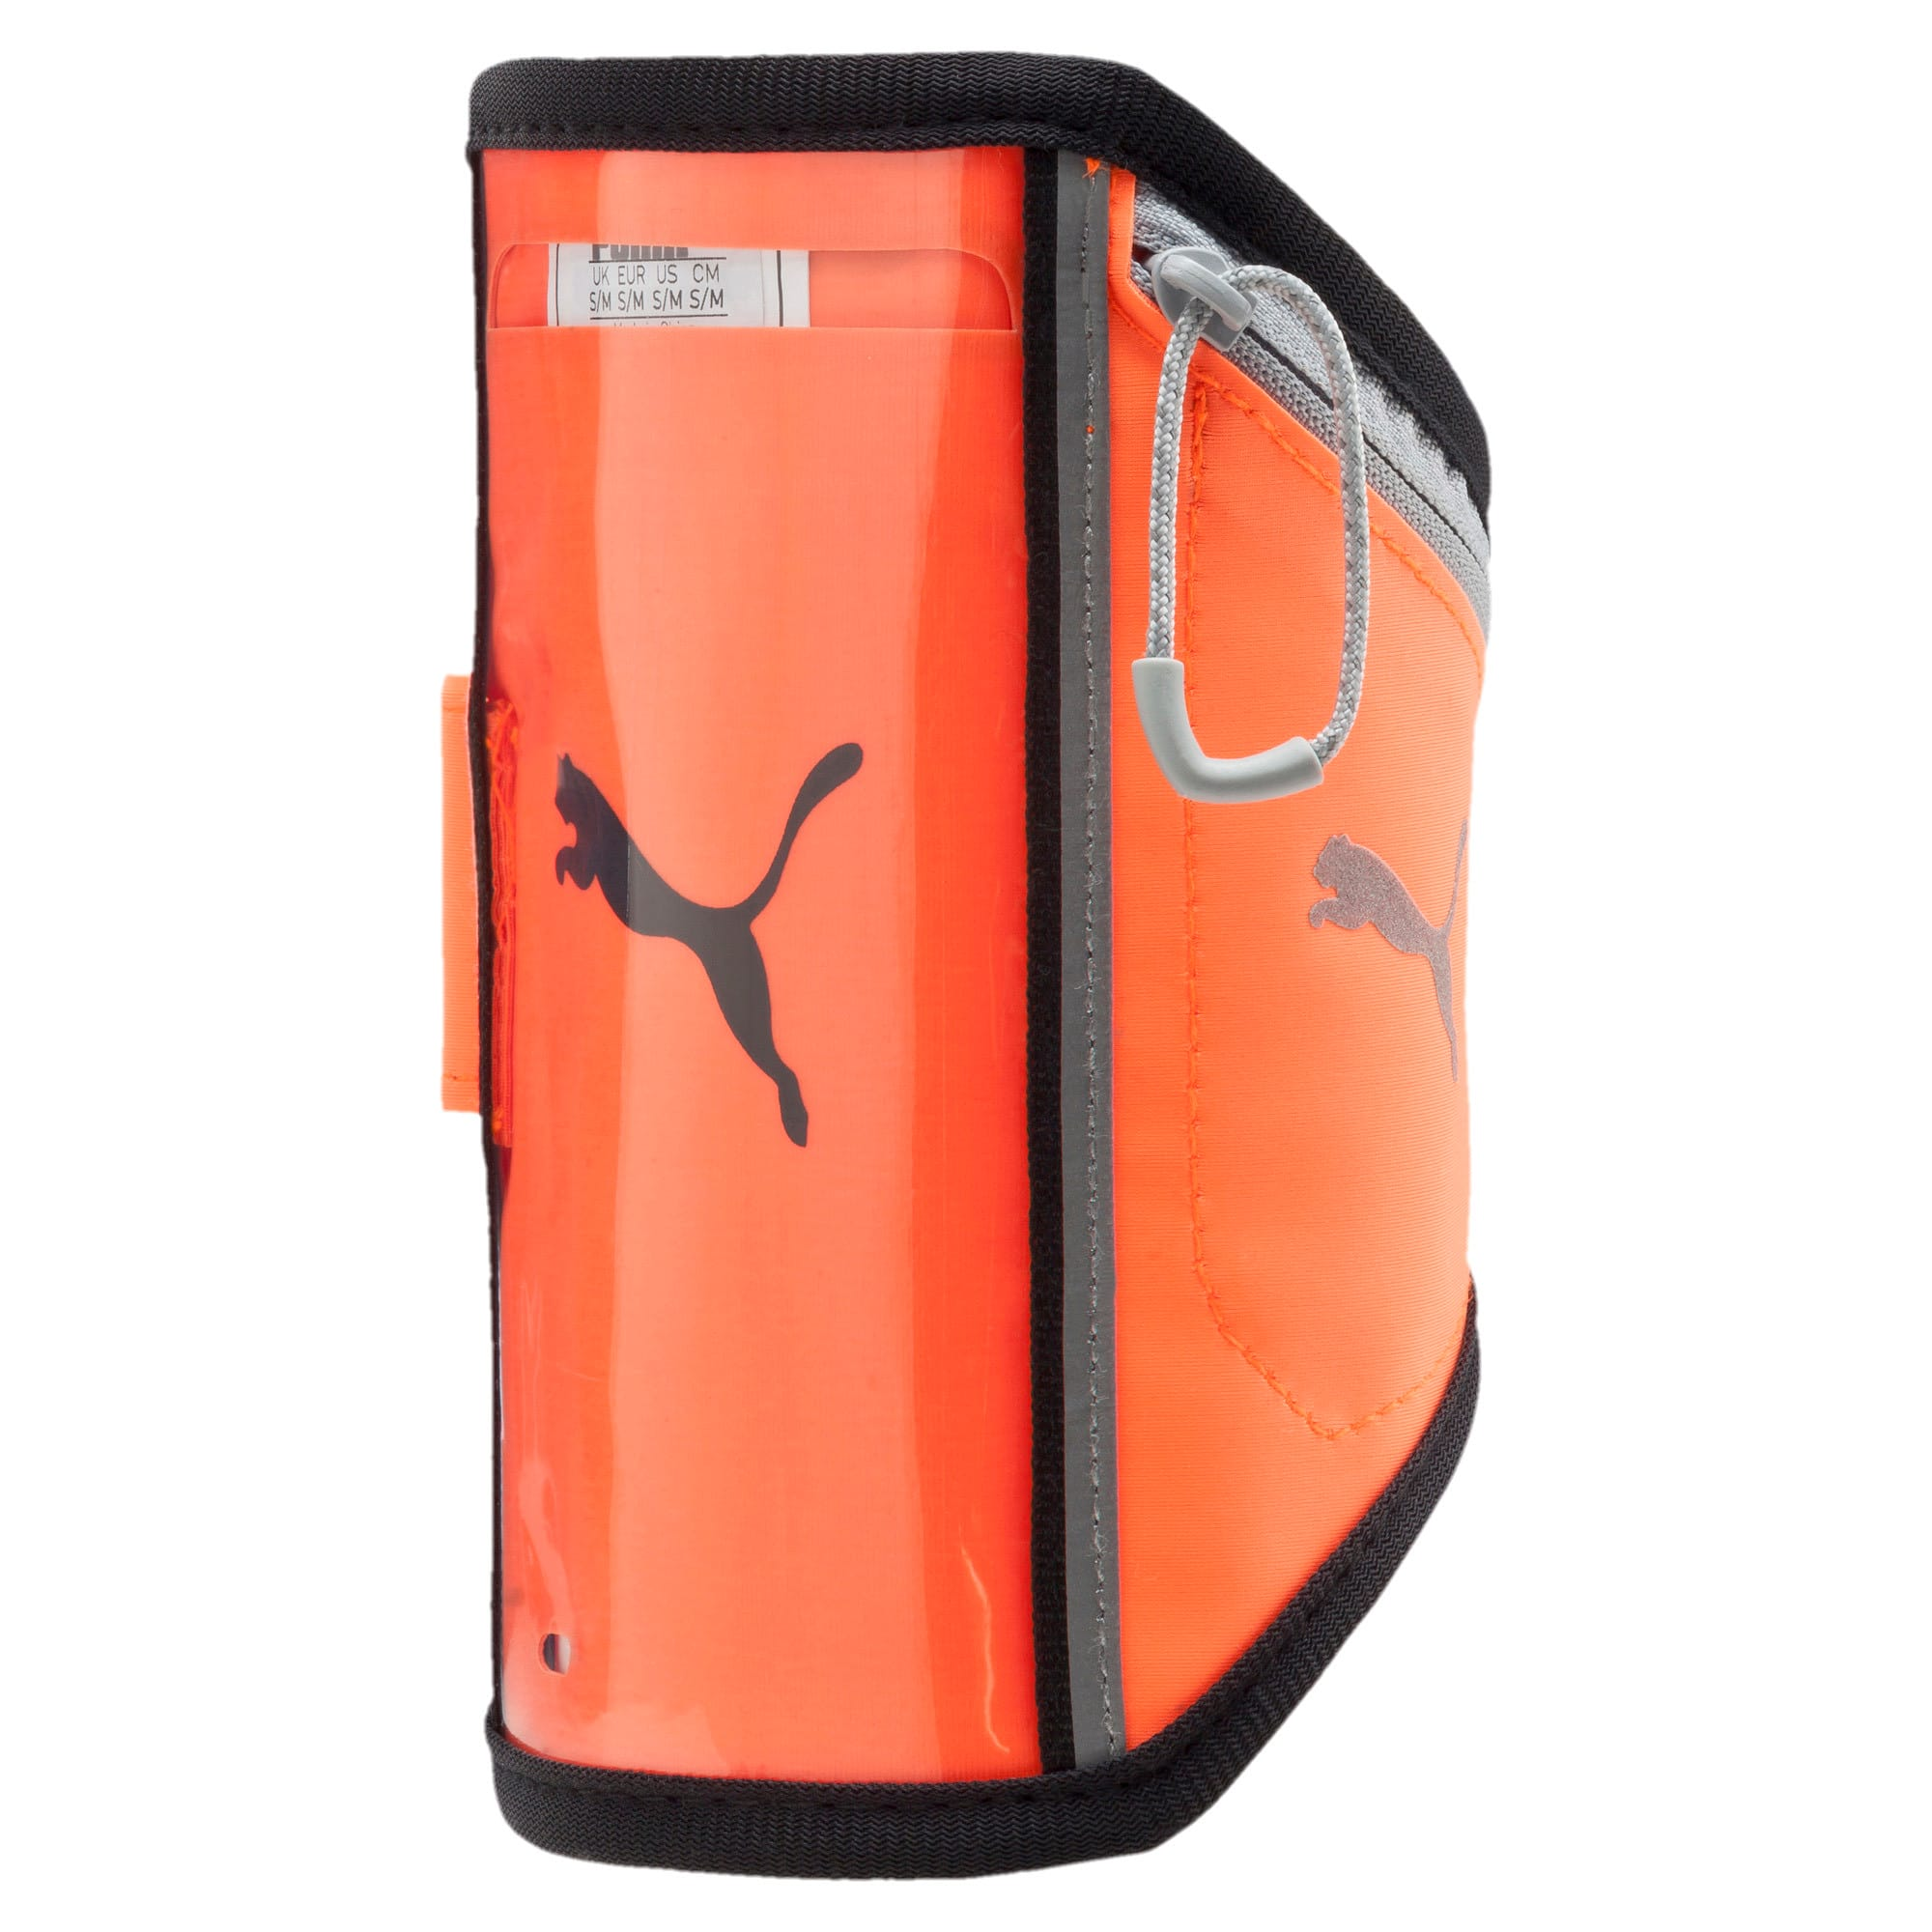 Thumbnail 1 of Running iPhone Arm Pocket, Shocking Orange-Black-Quarry, medium-IND